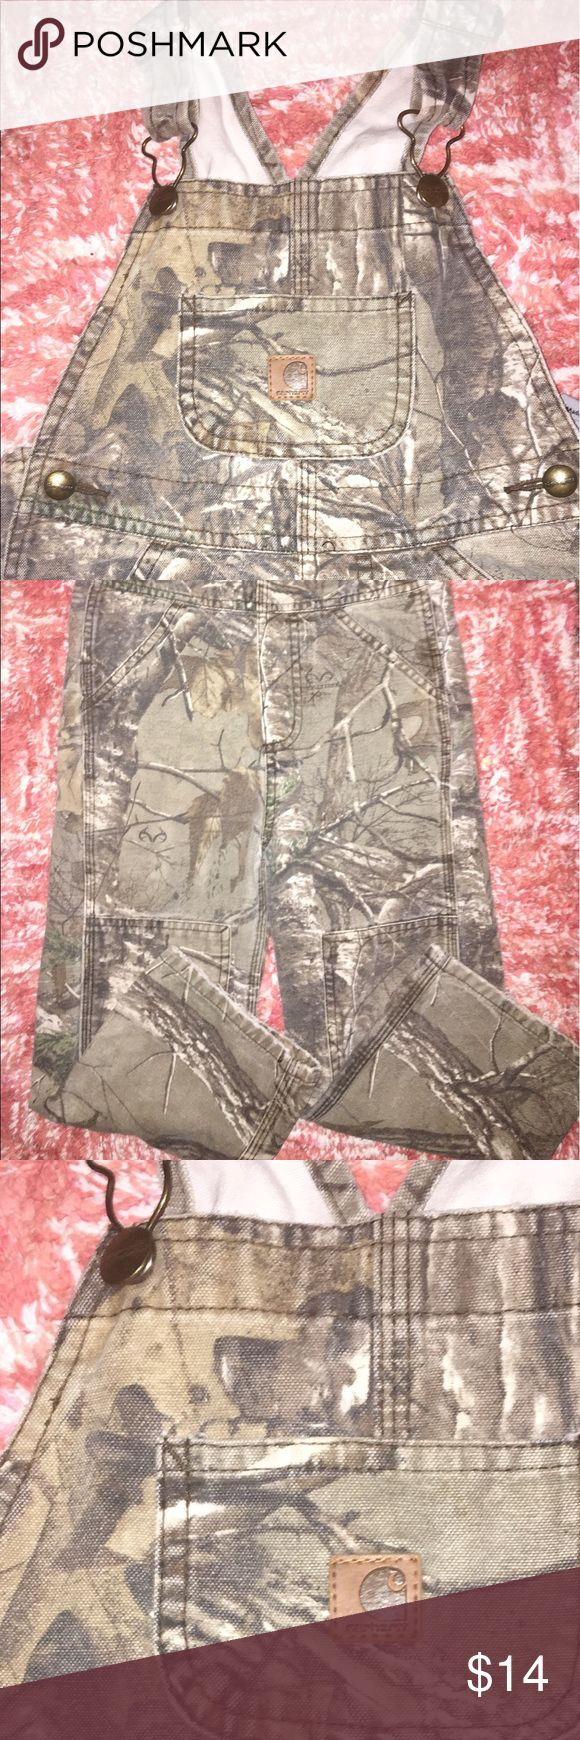 Size 4T CARHARTT Overalls Realtree Camo print CARHART overalls.     ••Size 4Toddler. 🎁🎁Thanknyou gift with every order 🎁🎁 Carhartt Other